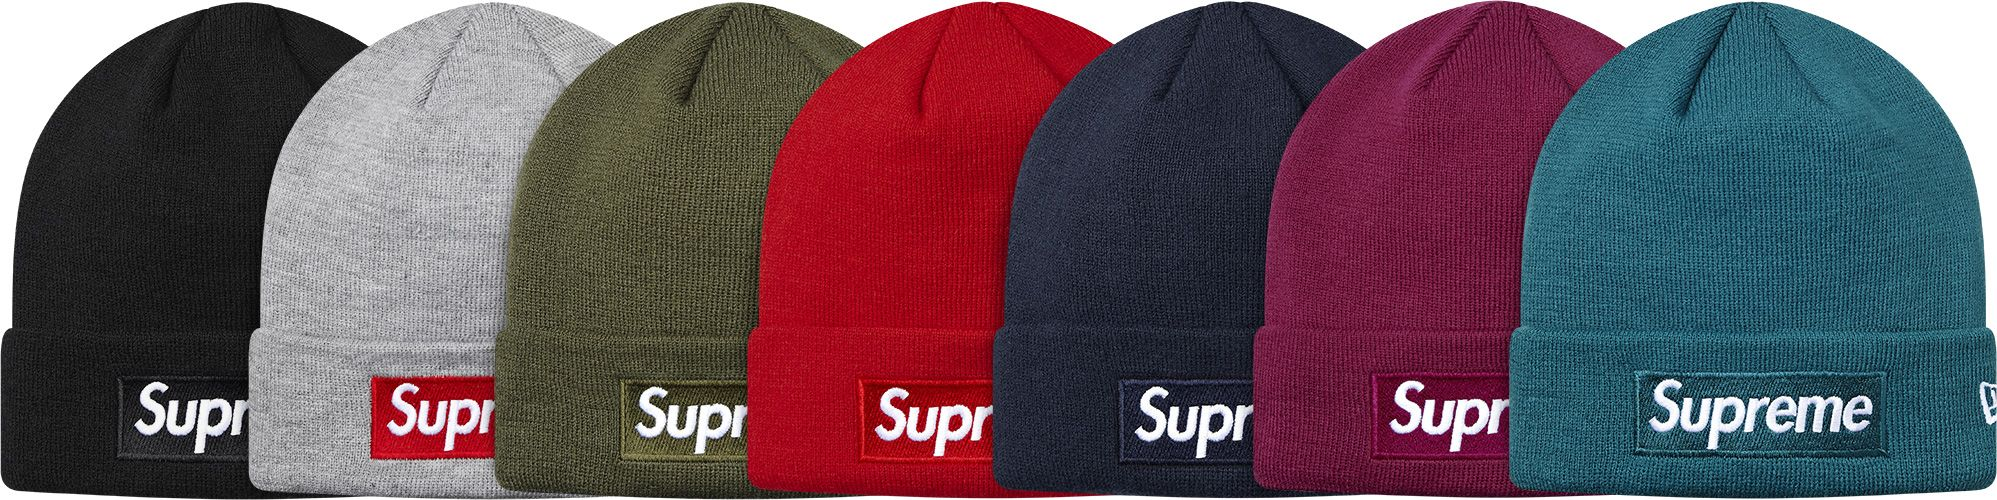 Supreme New Era Box Logo Beanie  8f11fe35f7a